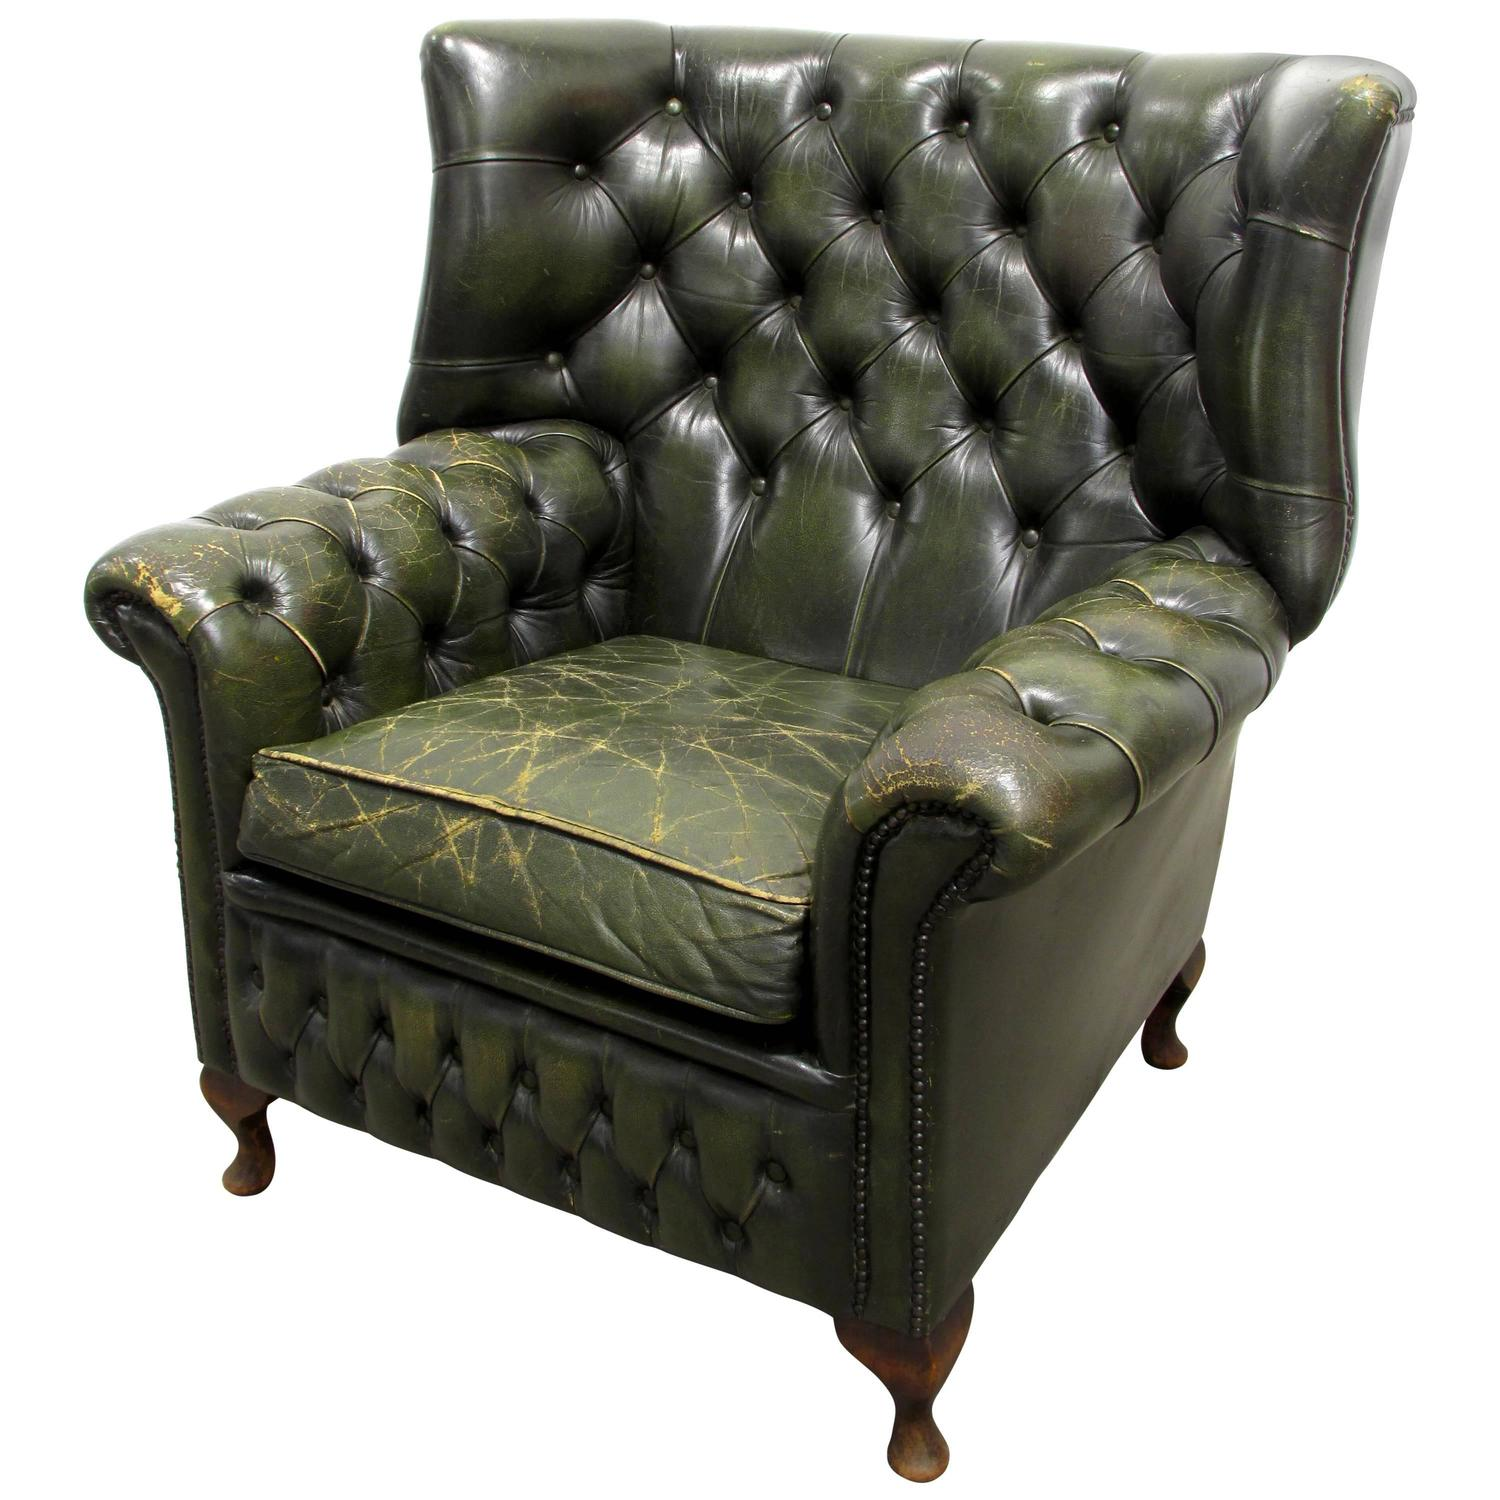 Green tufted leather wingback chair for sale at 1stdibs for Leather wingback recliner sale